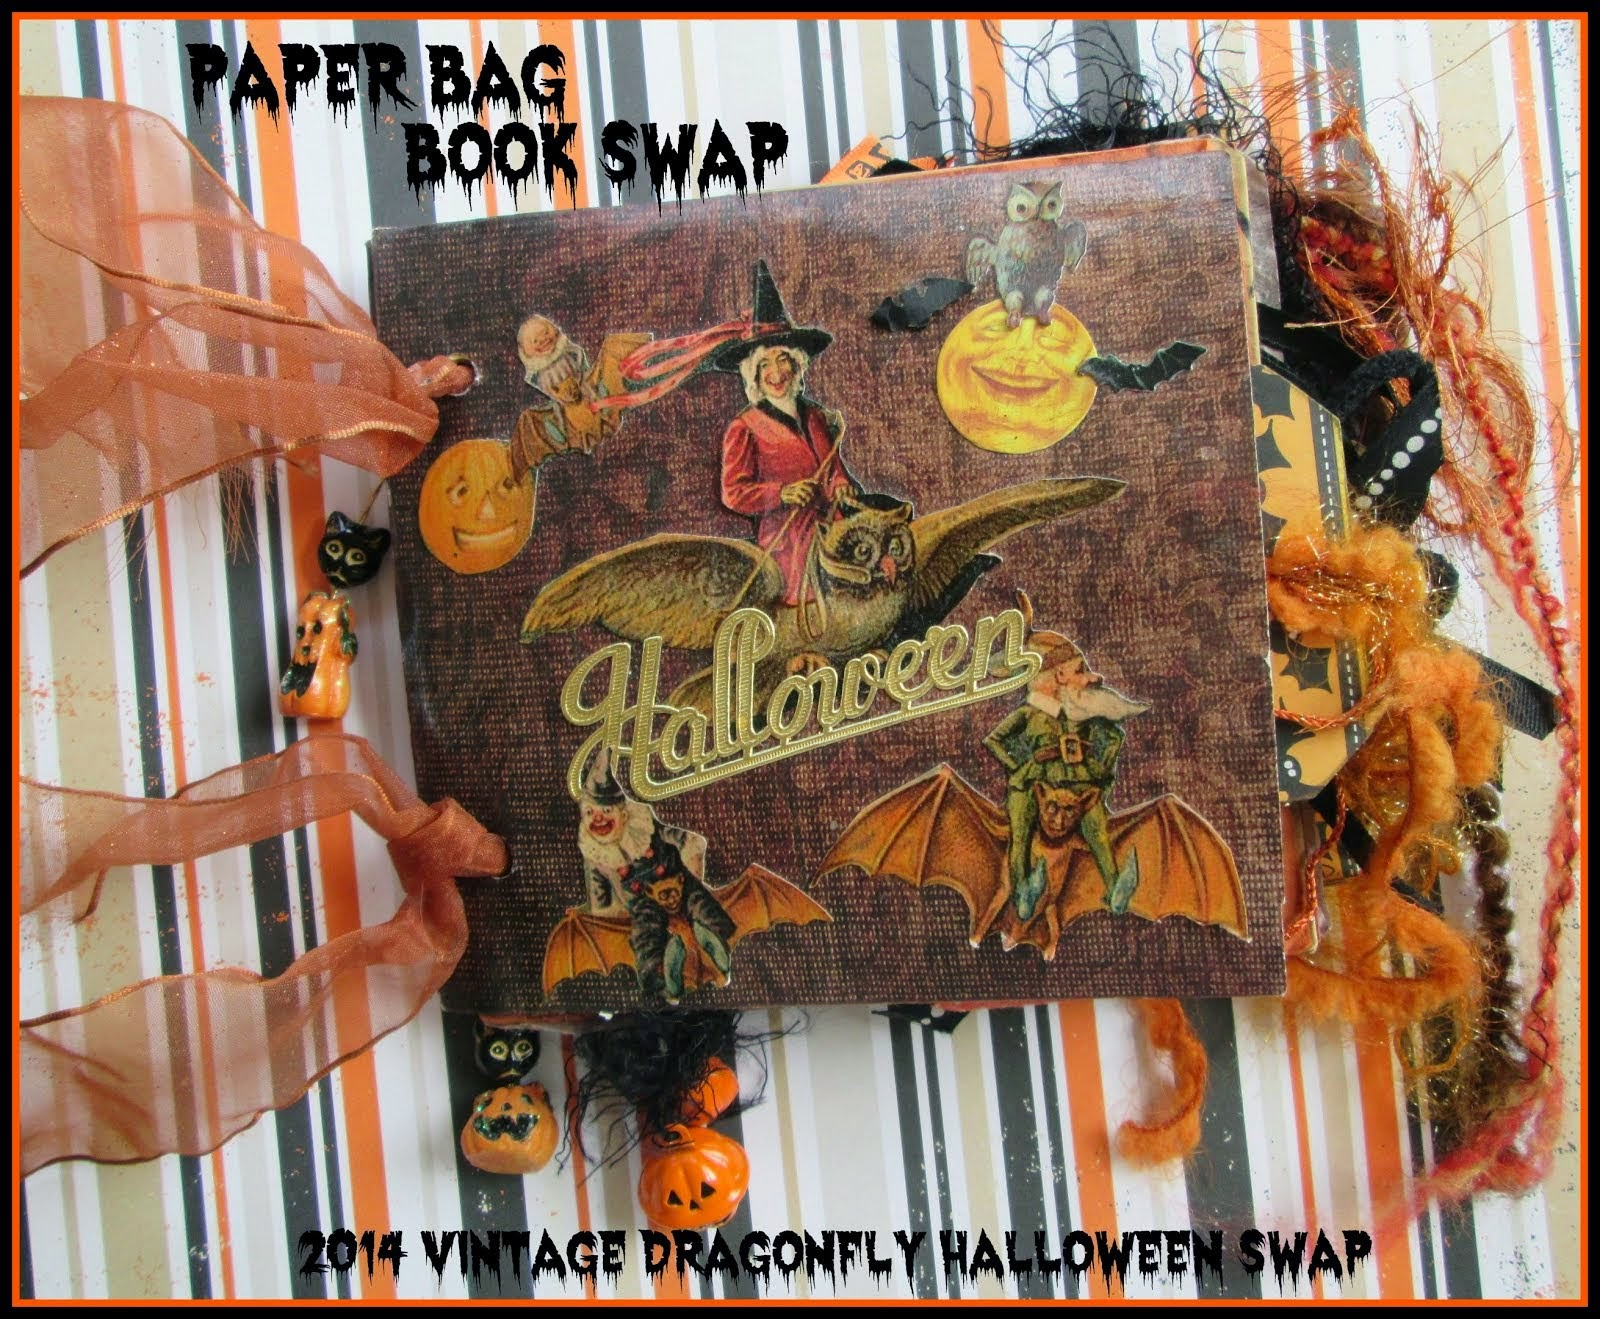 2014 Vintage Dragonfly's Halloween Paper Bag Book Swap